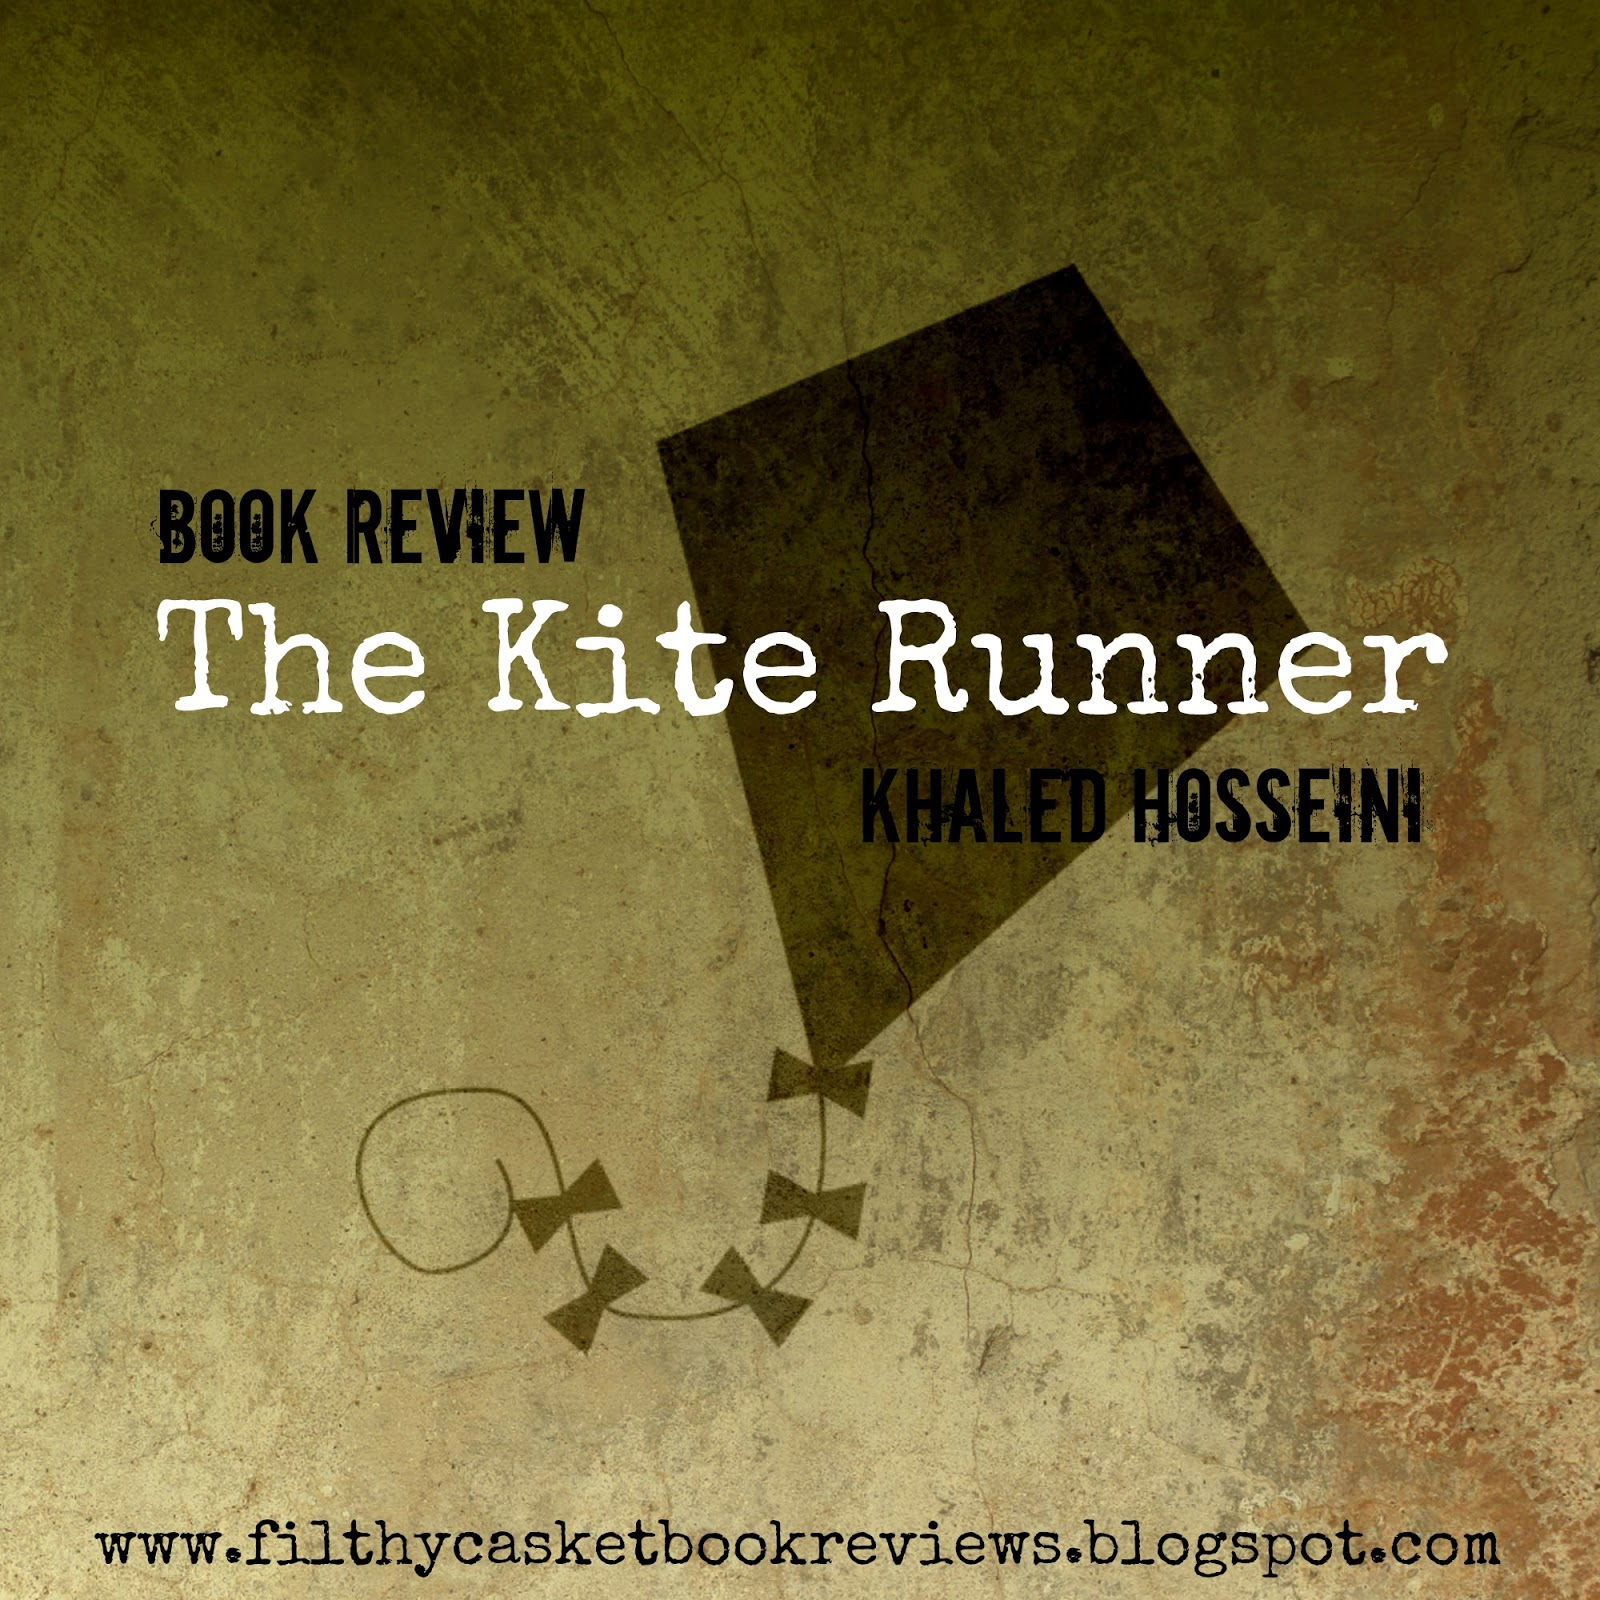 the kite runner vicious cycle of Life-cycle whimsically, dawe depicts a solitary culture conditioned by an overwhelming fascination with afl football the insinuation that victorians are born into football loyalty, similar to that of religion, suggests that dawe possesses the unique ability to detect similarities in events that are generally opaque to the standard eye.